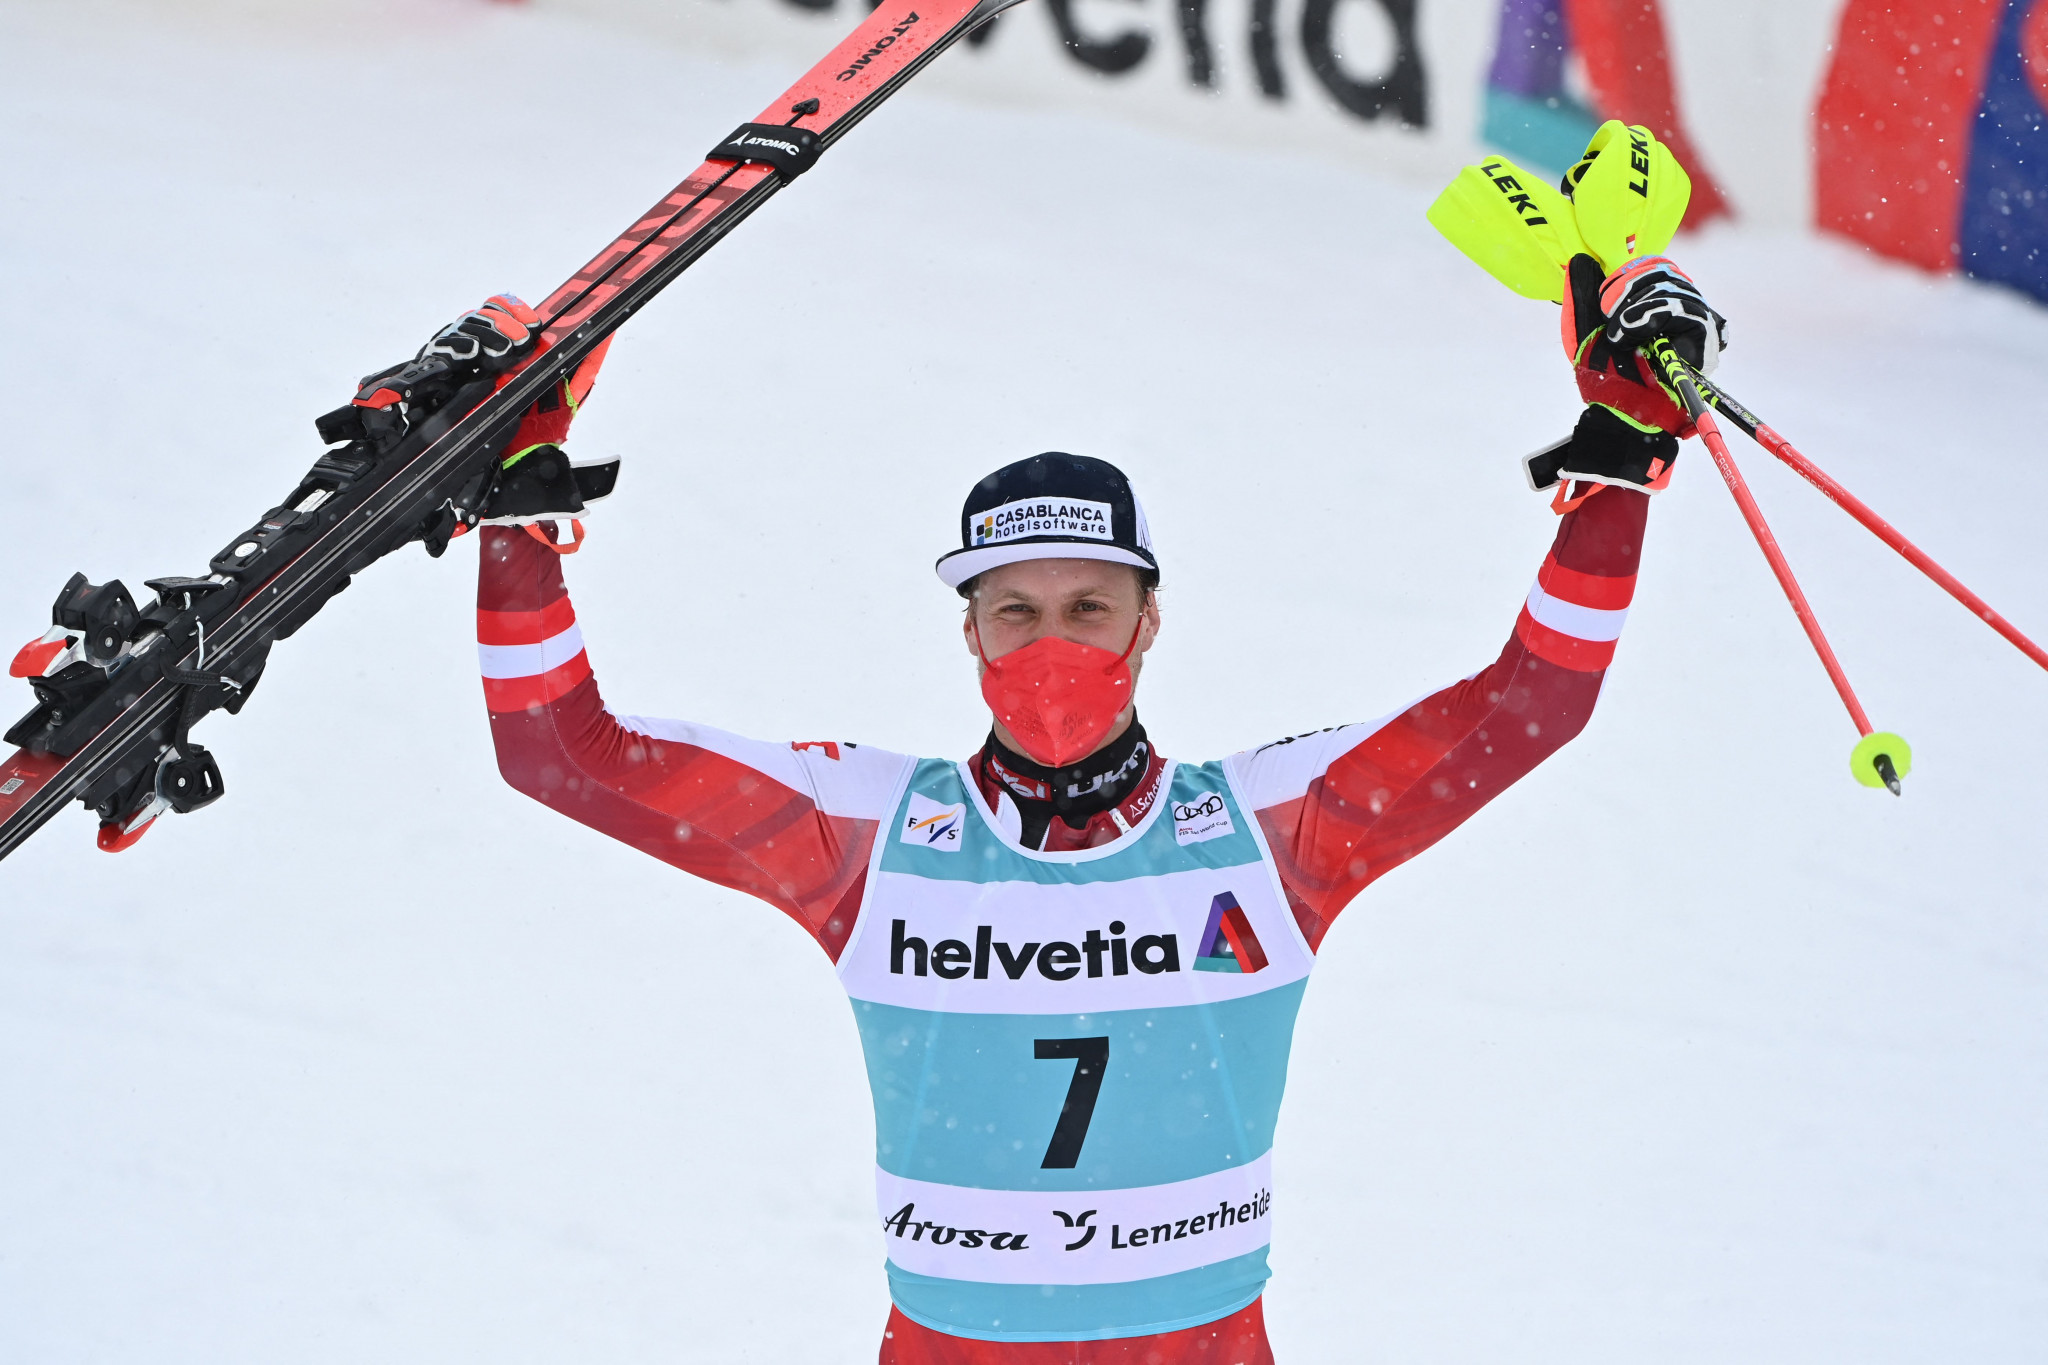 Austria's Manuel Feller stormed to slalom victory in the final race of the season ©Getty Images